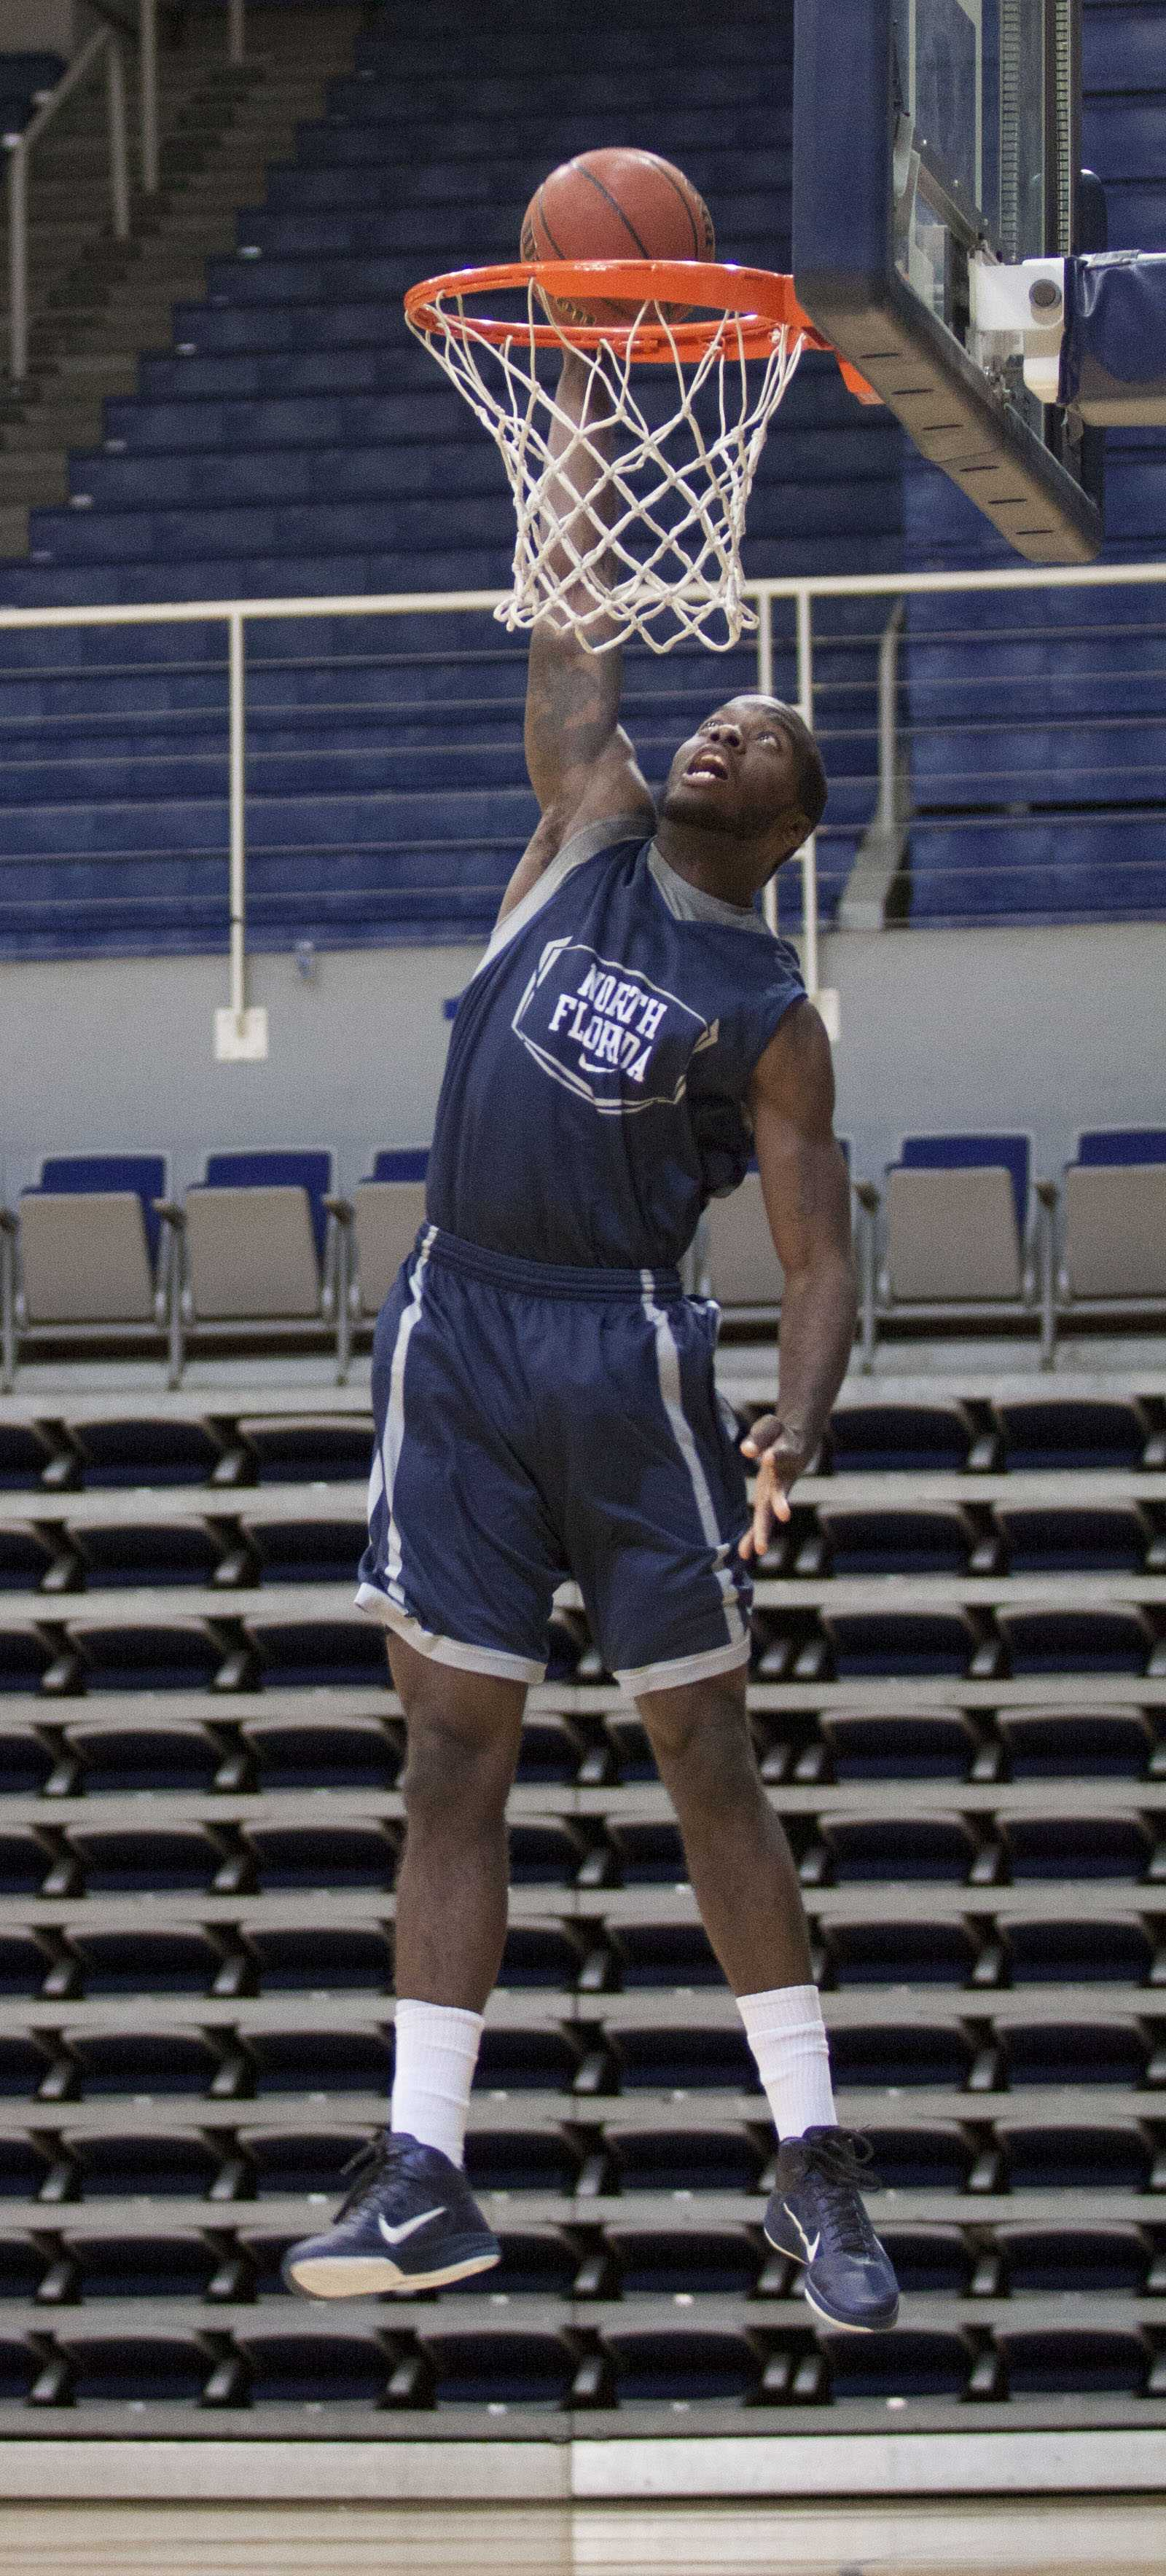 Photo Credit: Andrew Noble